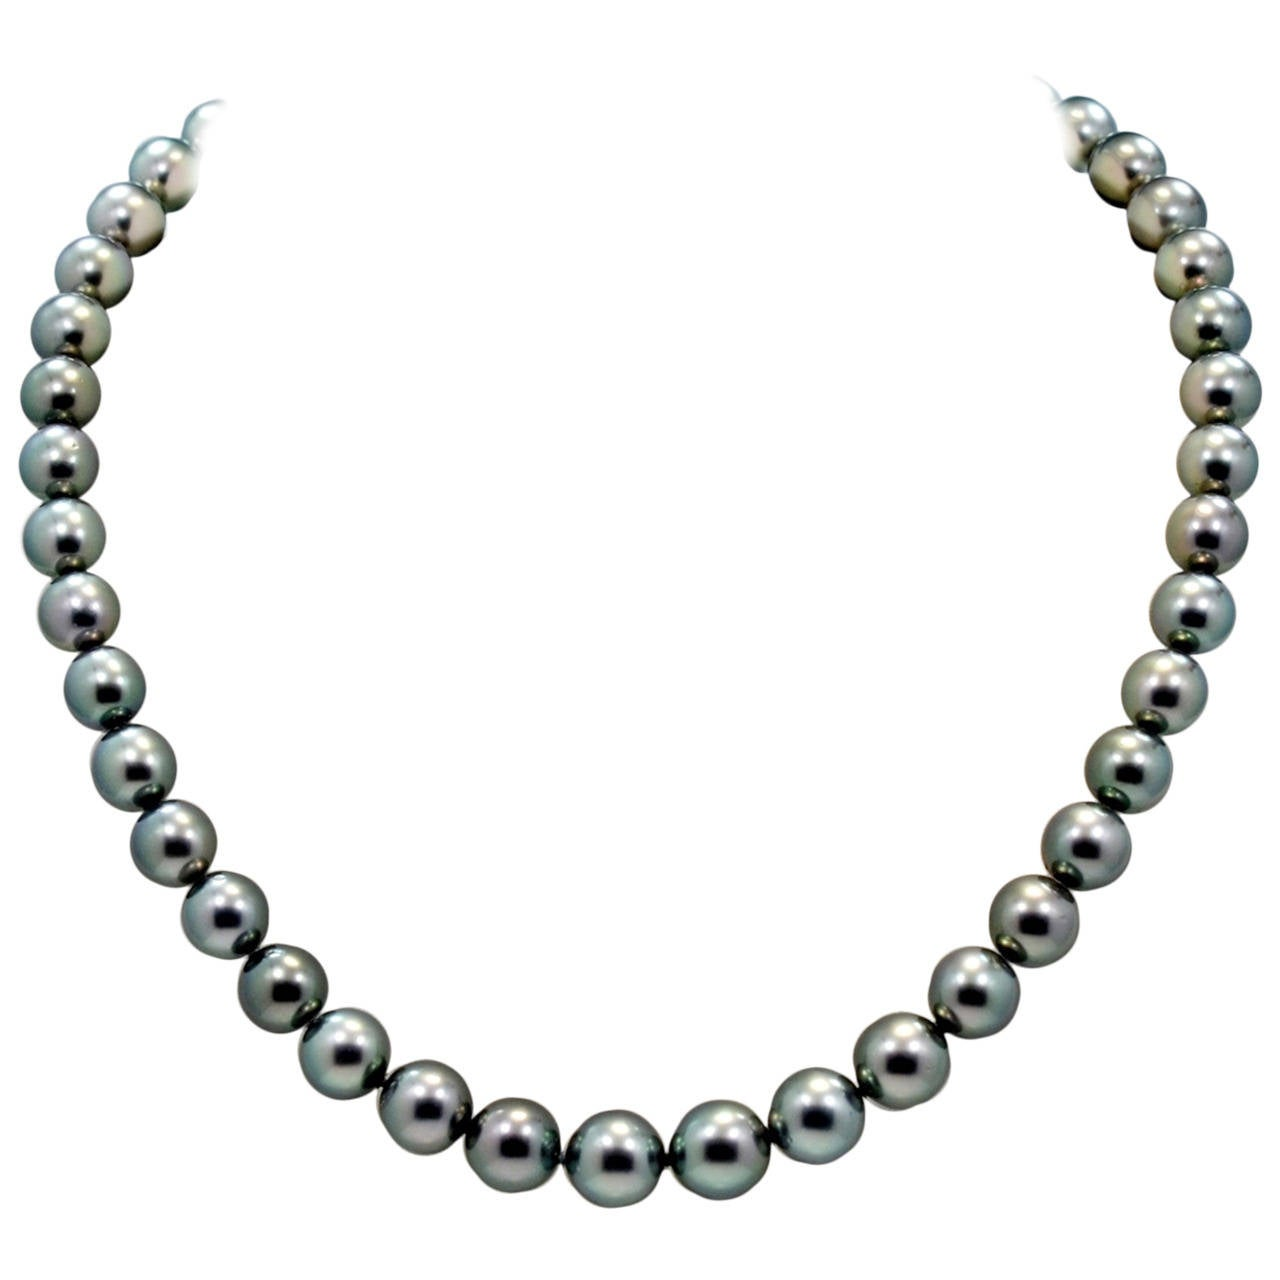 cultured christies christie strand mikimoto online nyr necklace jewels s three pearl pearls